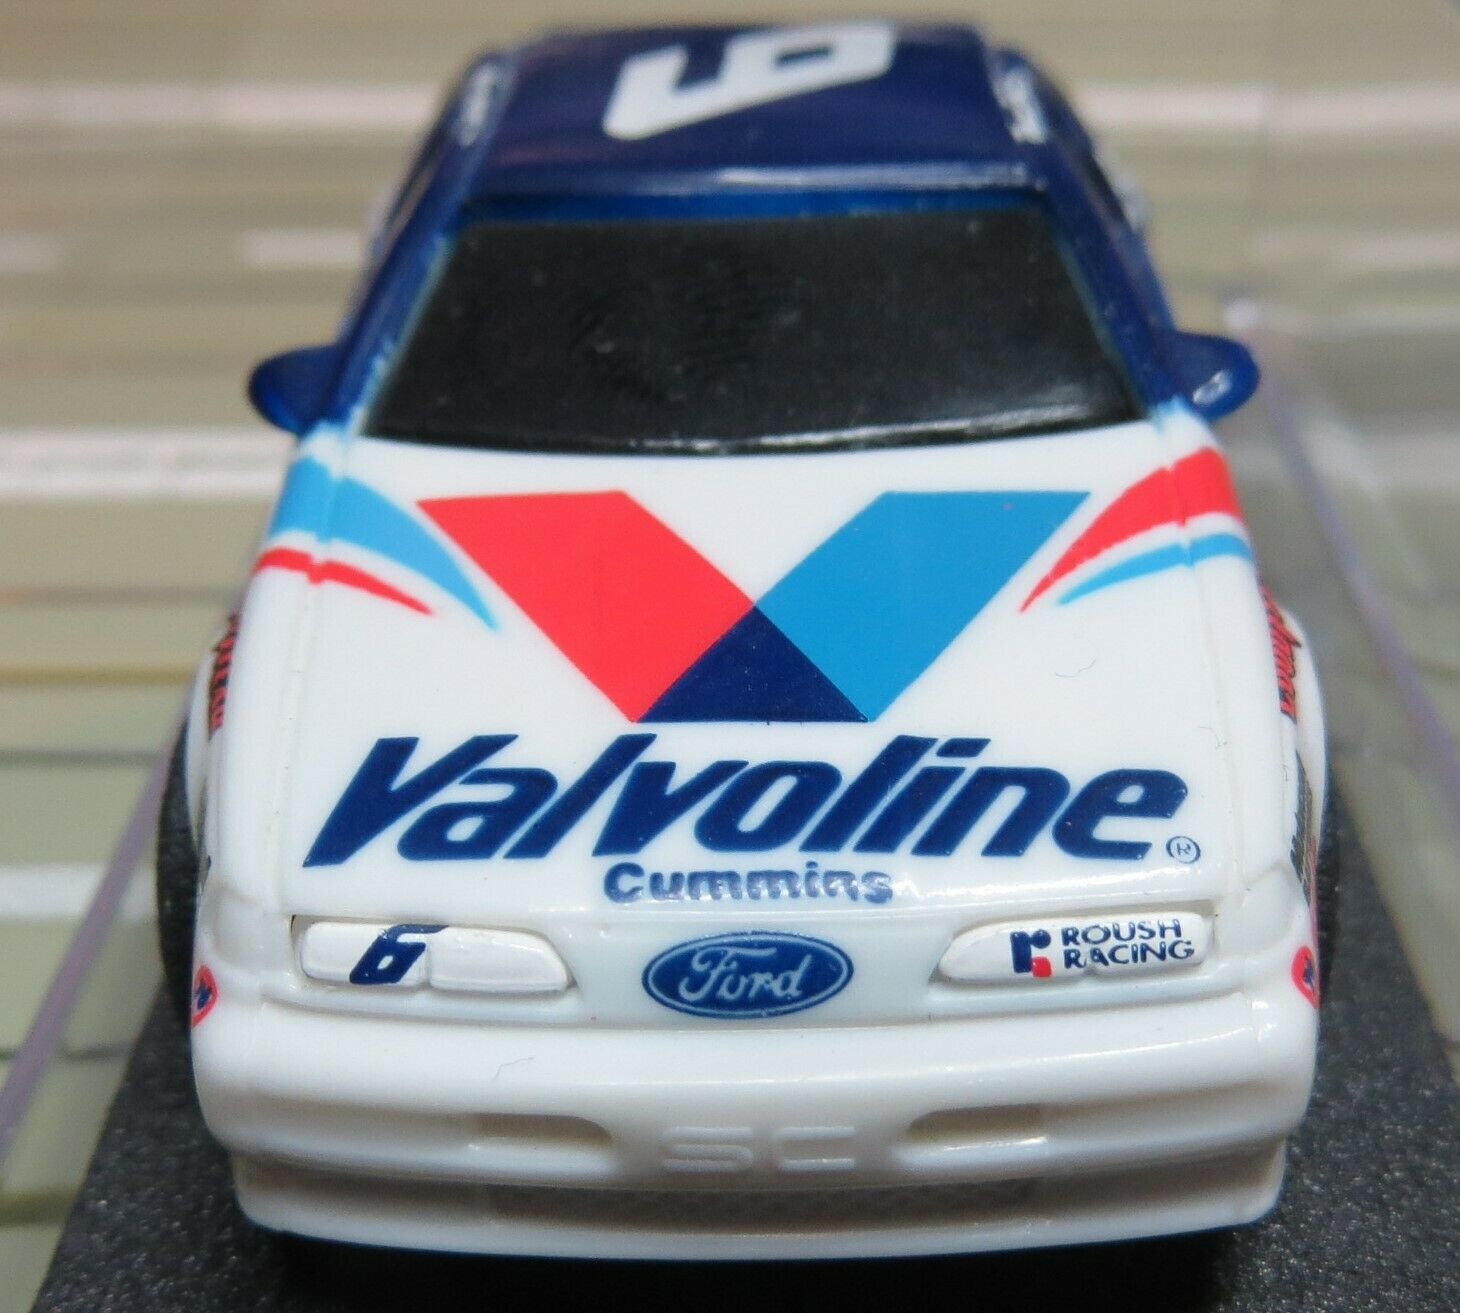 Für H0 SMassecar Racing Modelllbahn --  Nascar No 6  mit Tyco Chassis in Box